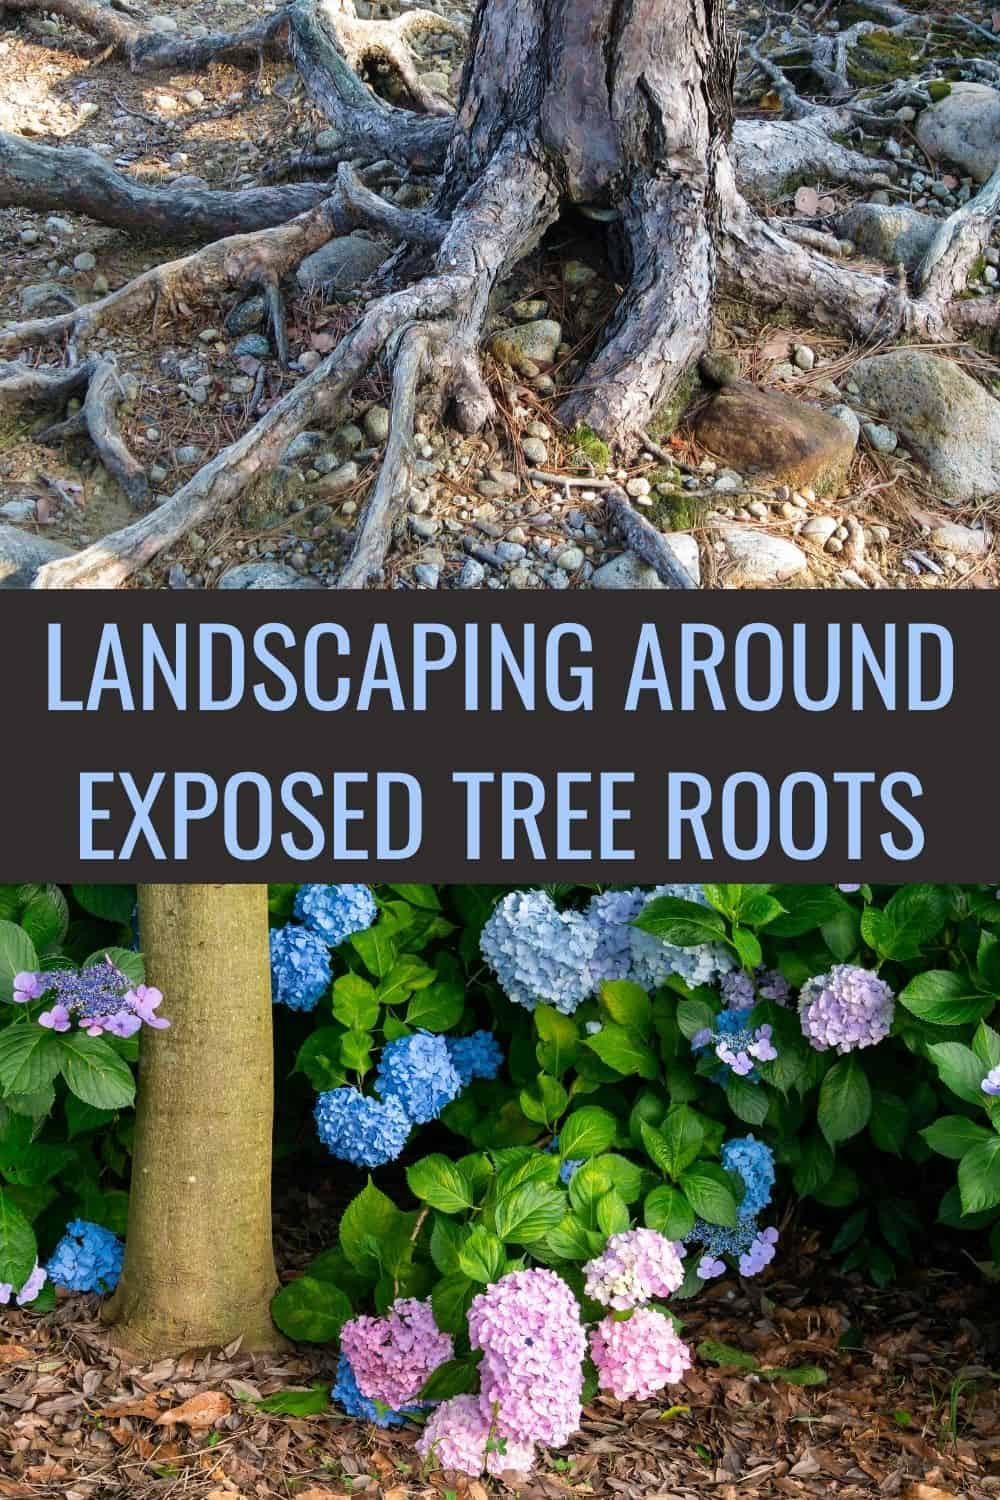 Landscaping around exposed tree roots